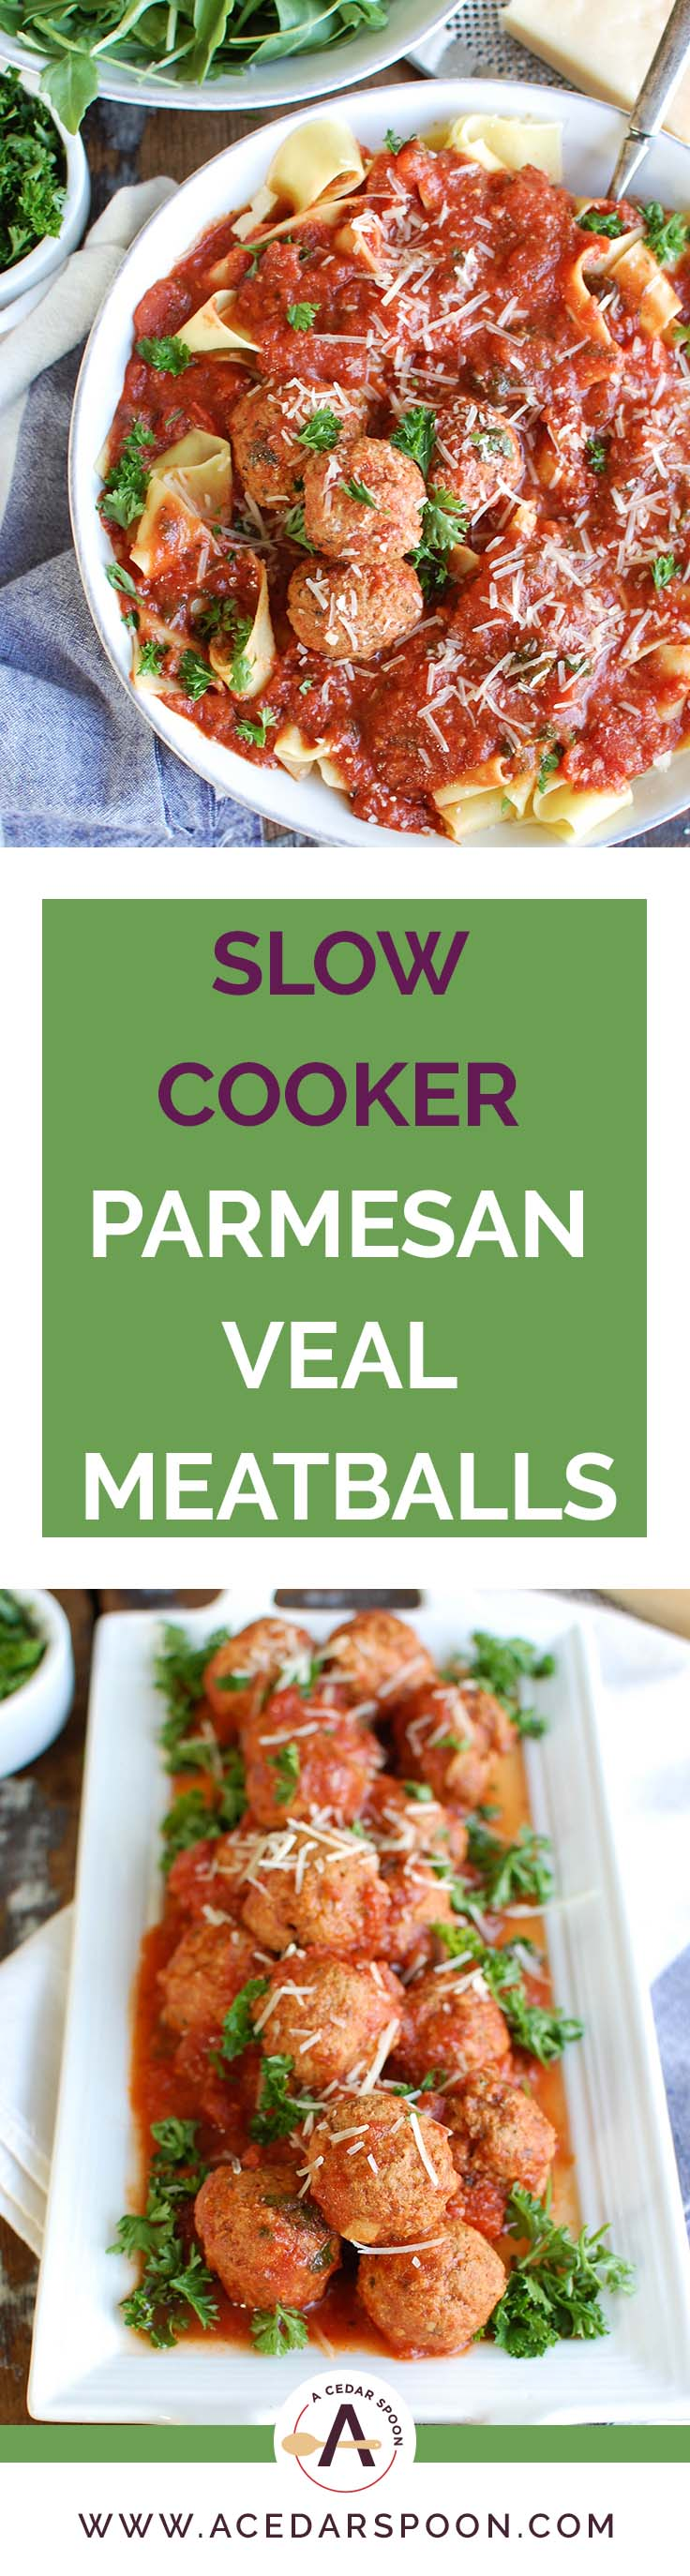 Slow Cooker Veal Parmesan Meatballs are tender meatballs that simmer in a rich tomato sauce and create a hearty, delicious meal perfect for a weeknight meal or a special occasion. Veal is lean and rich in nutrients and high in protein, making it a nice option!